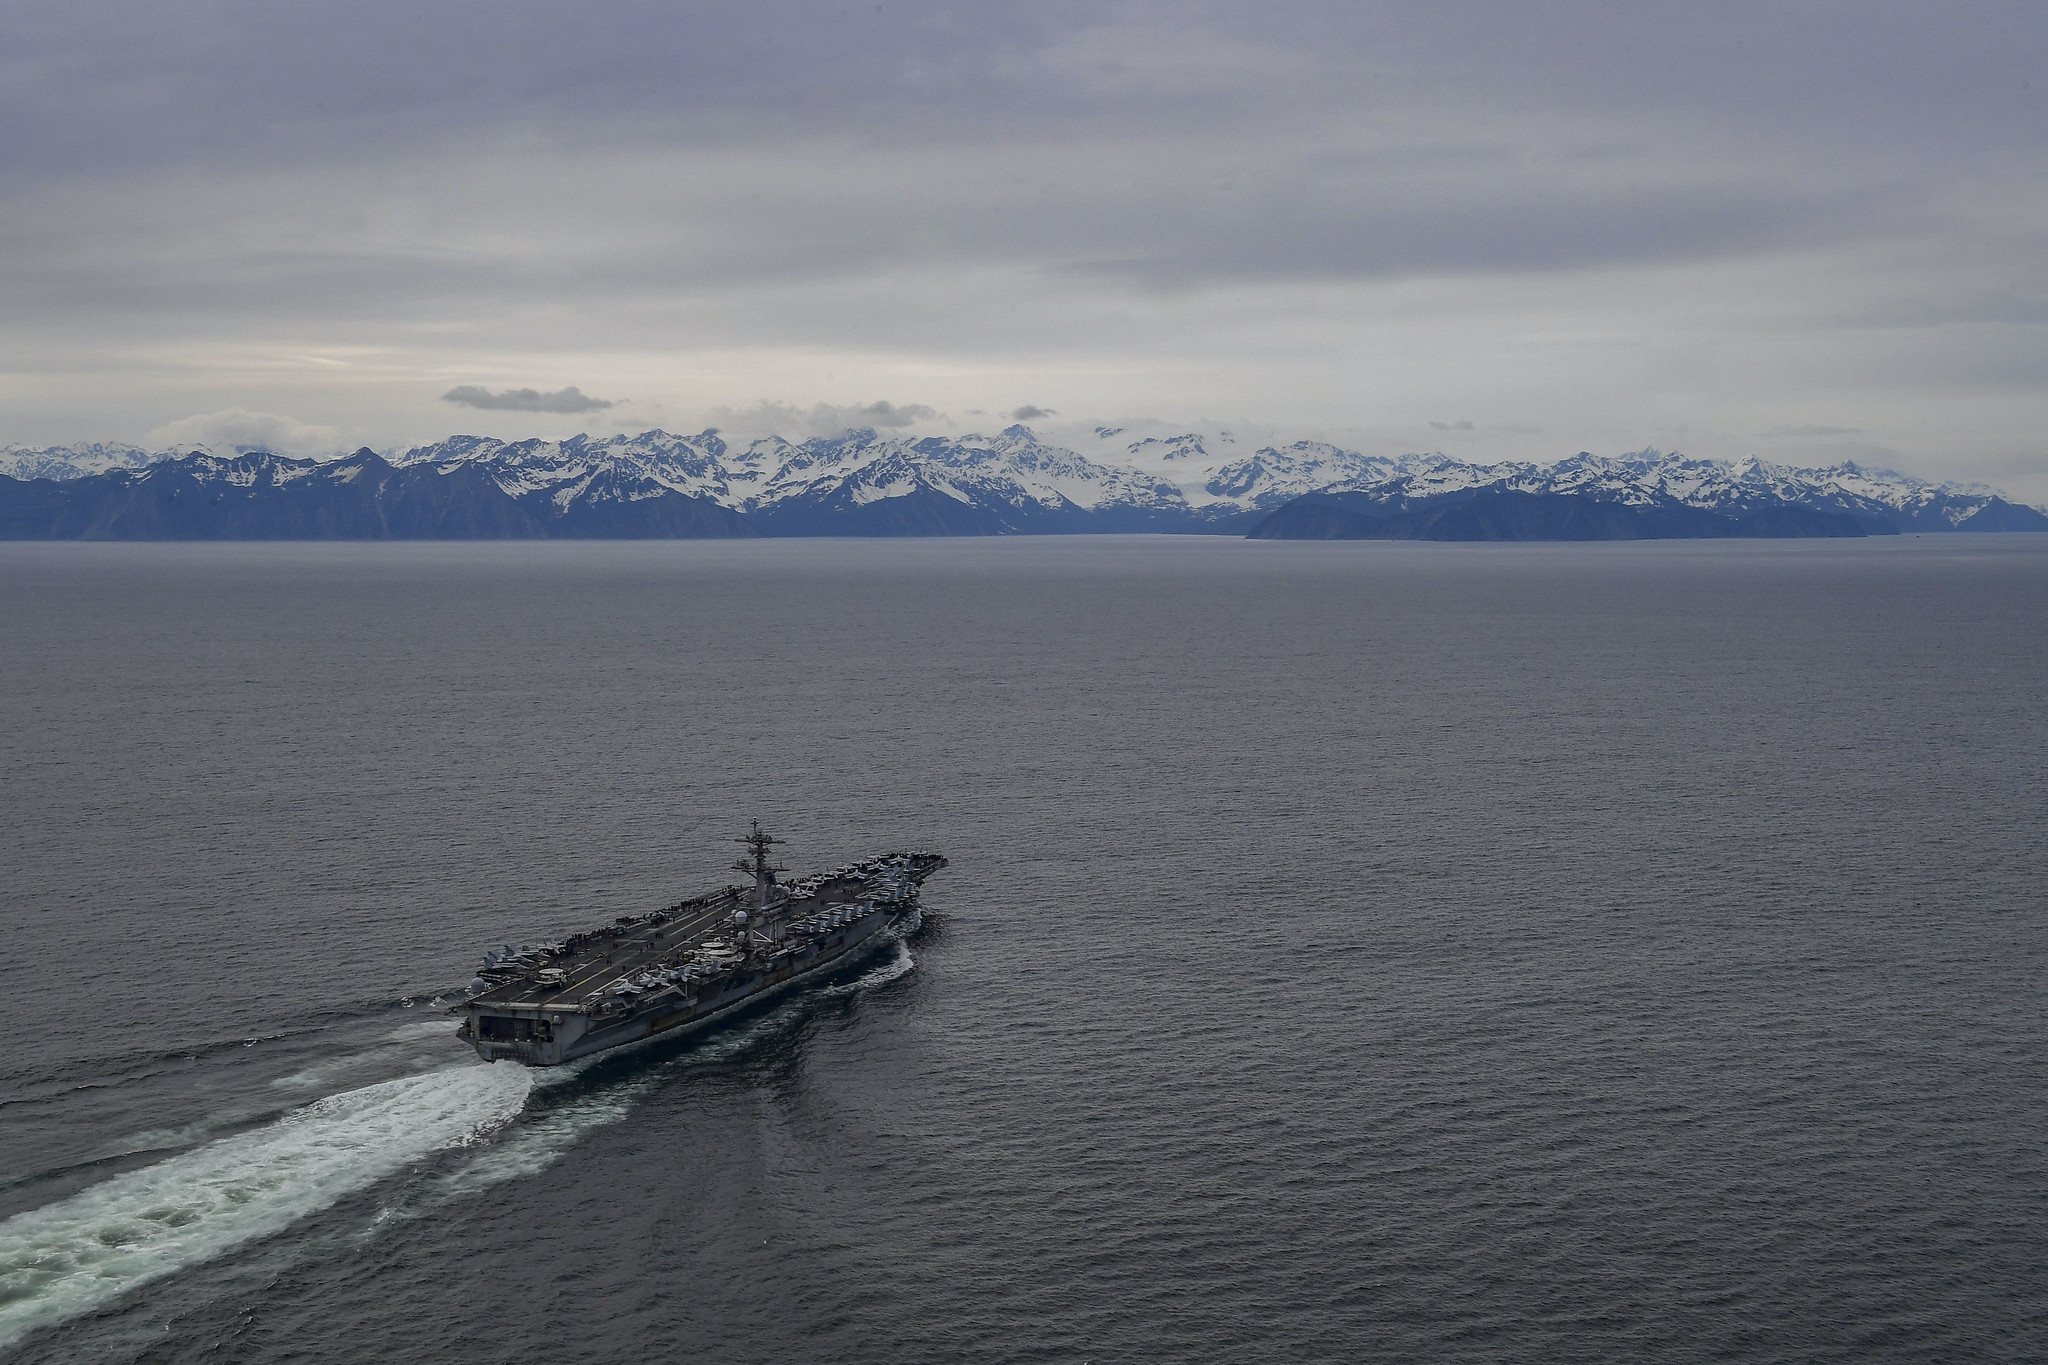 The aircraft carrier USS Theodore Roosevelt (CVN 71) transits the Gulf of Alaska, May 7, 2021, in support of flight operations above the Joint Pacific Alaska Range Complex and Gulf of Alaska during Exercise Northern Edge 2021 (NE21). (MC3 Brandon Richardson/Navy)